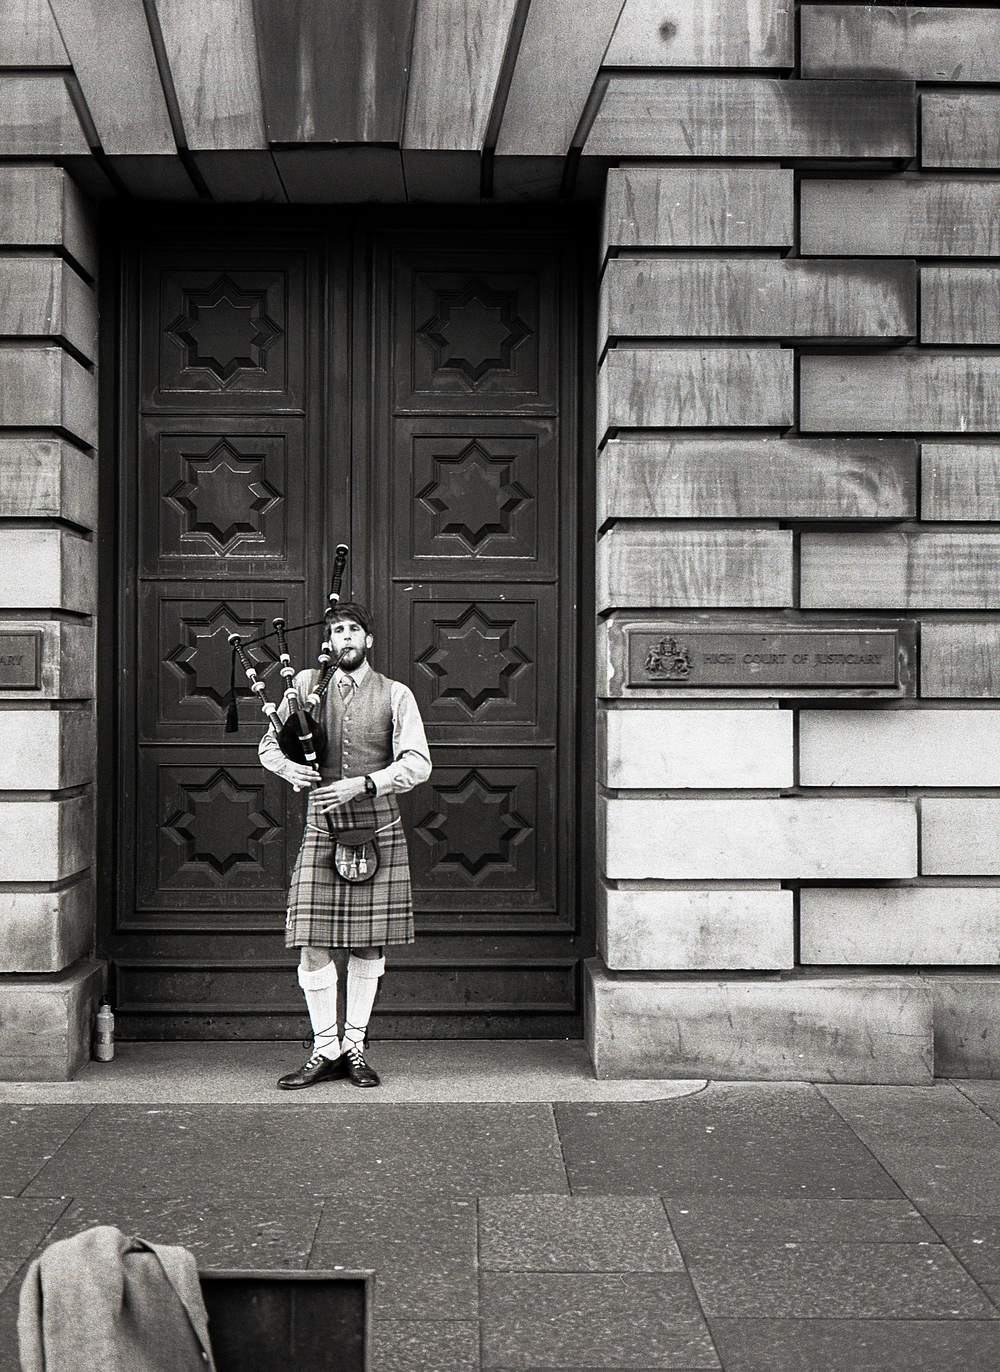 Edinburgh, Scotland - Kodak TriX - October 2015